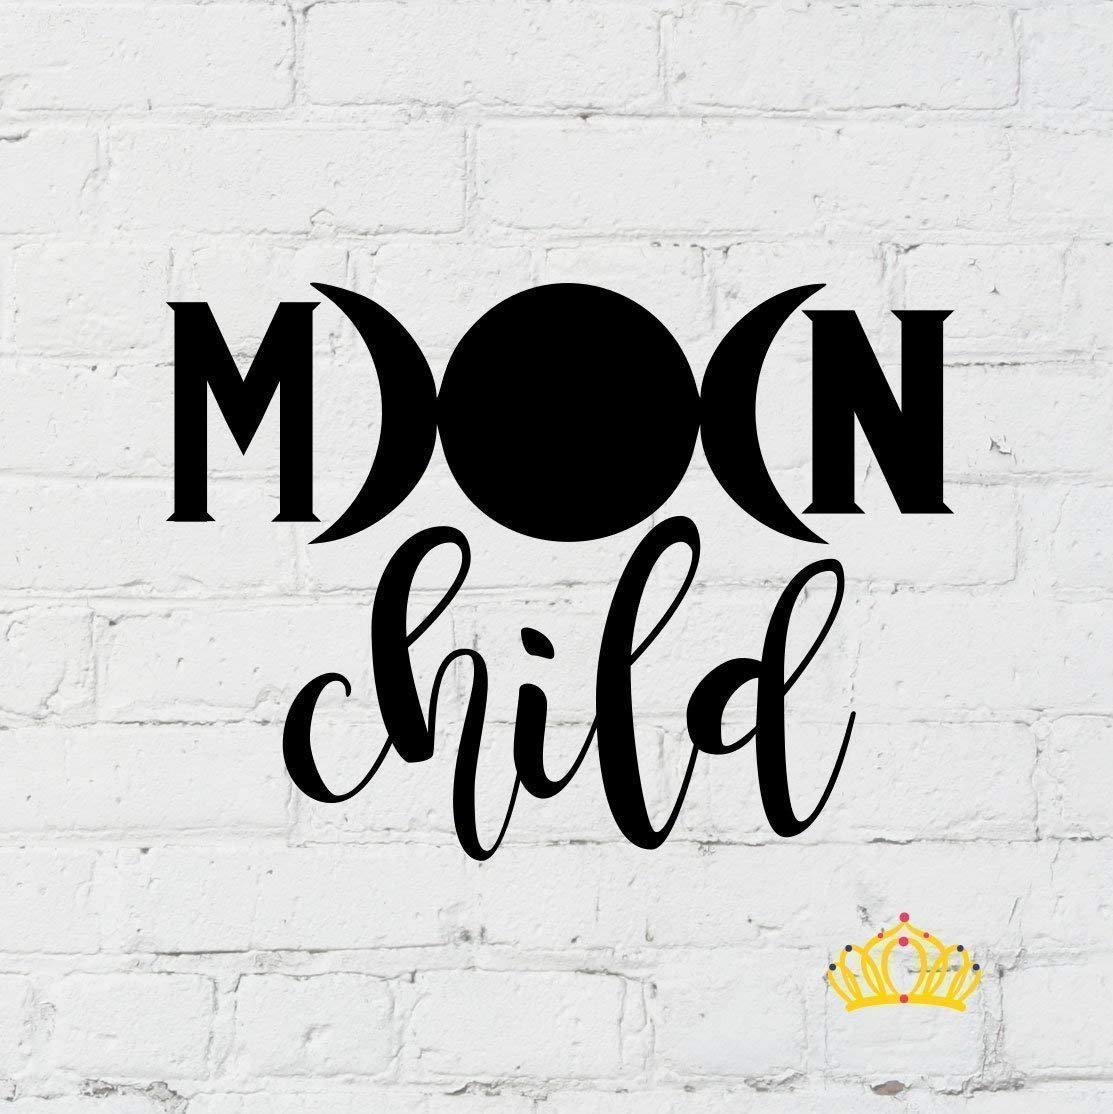 Tumbler Moon Child Vinyl Decal Sticker for Car Laptop or Cup,- Black 3 inches